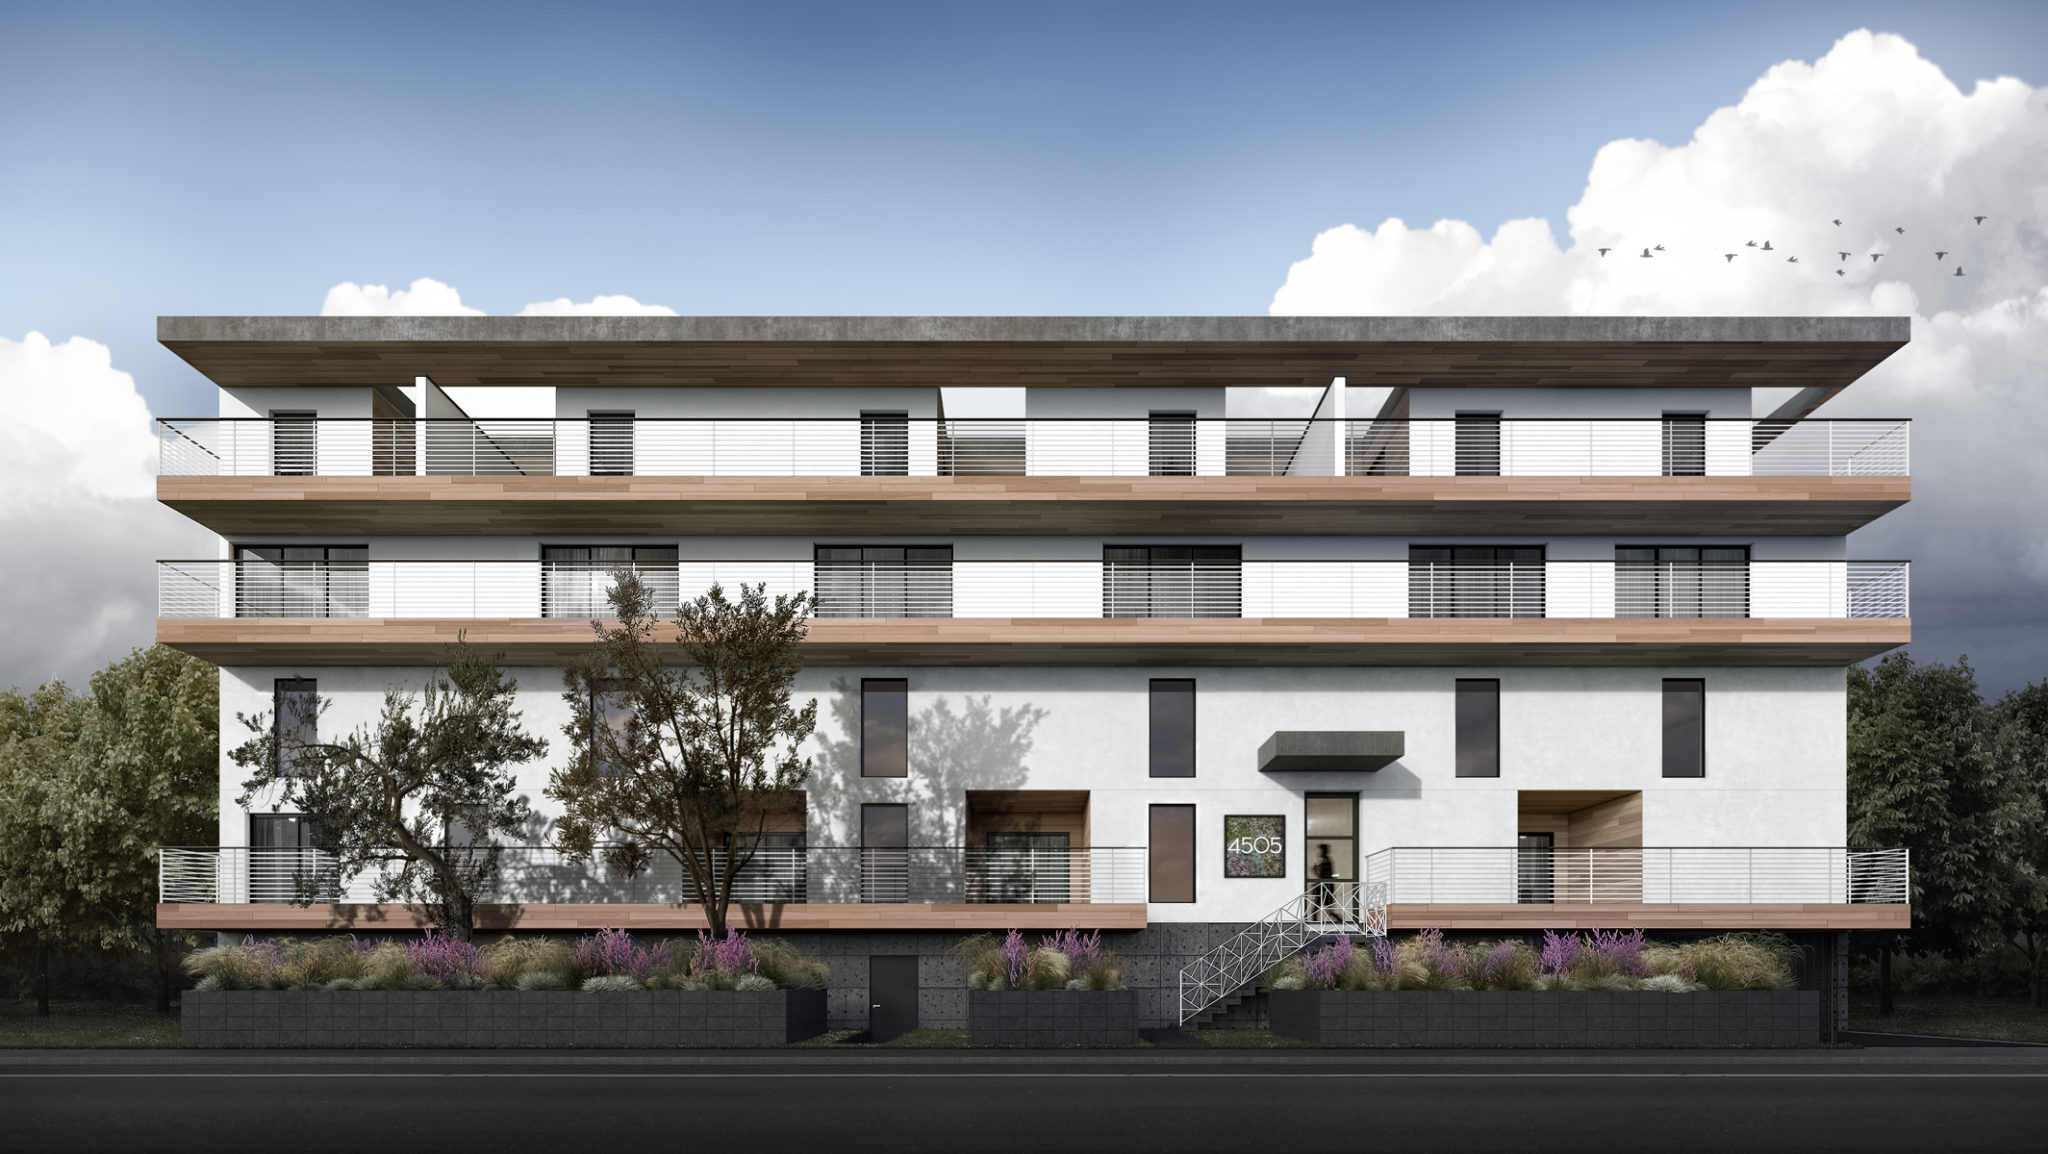 luxury apartments, multi family, modern, contemporary, playa vista, venice beach, culver city, marina del rey, los angeles, mar vista, kenihan development, apartments, for rent,